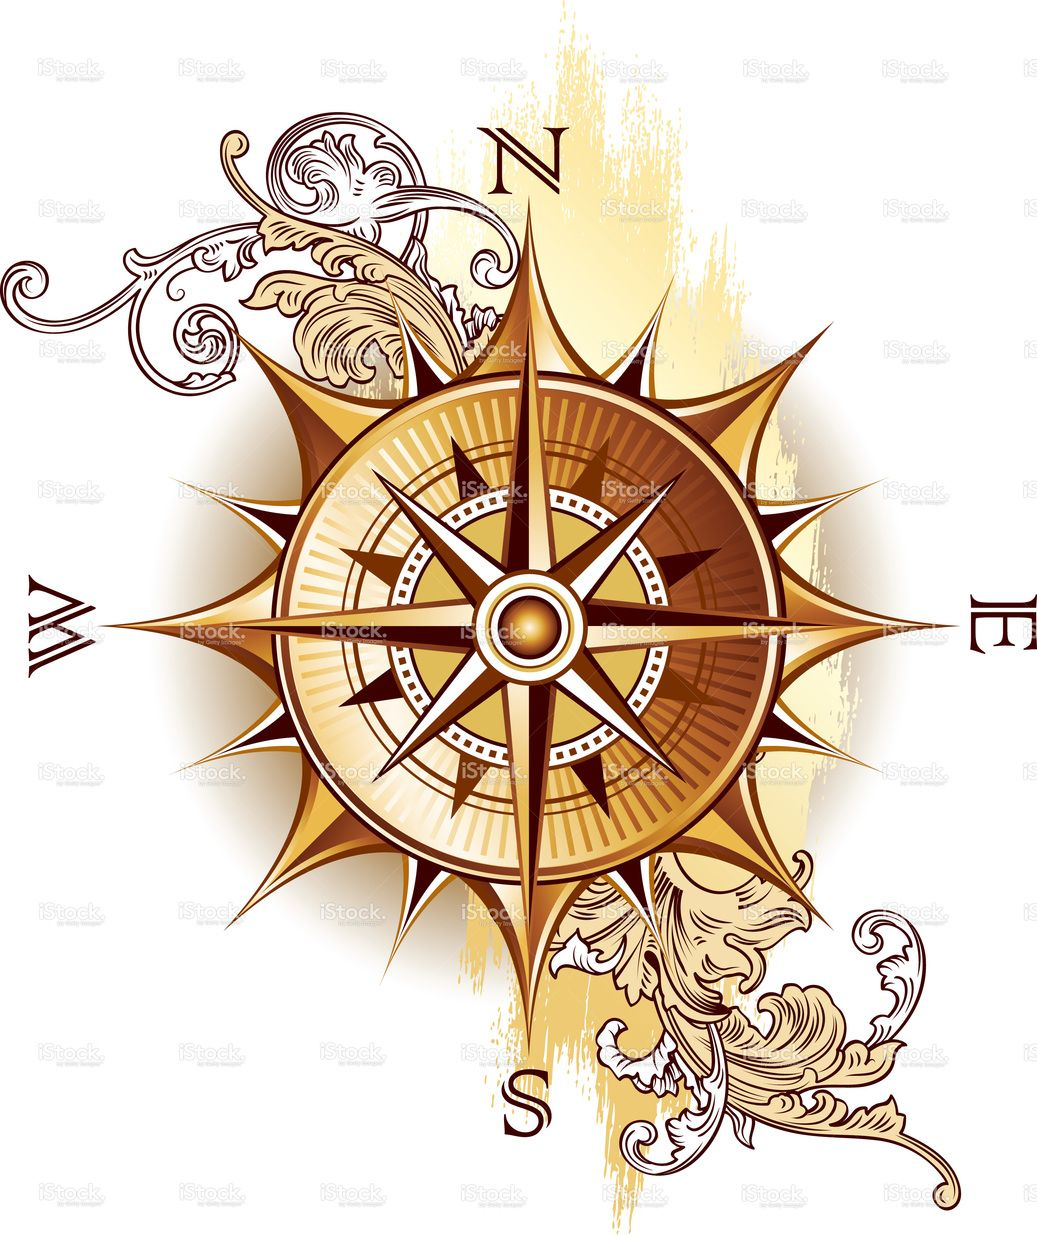 Decorative Image Of Age Old Compass Compass Drawing Compass Art Compass Tattoo